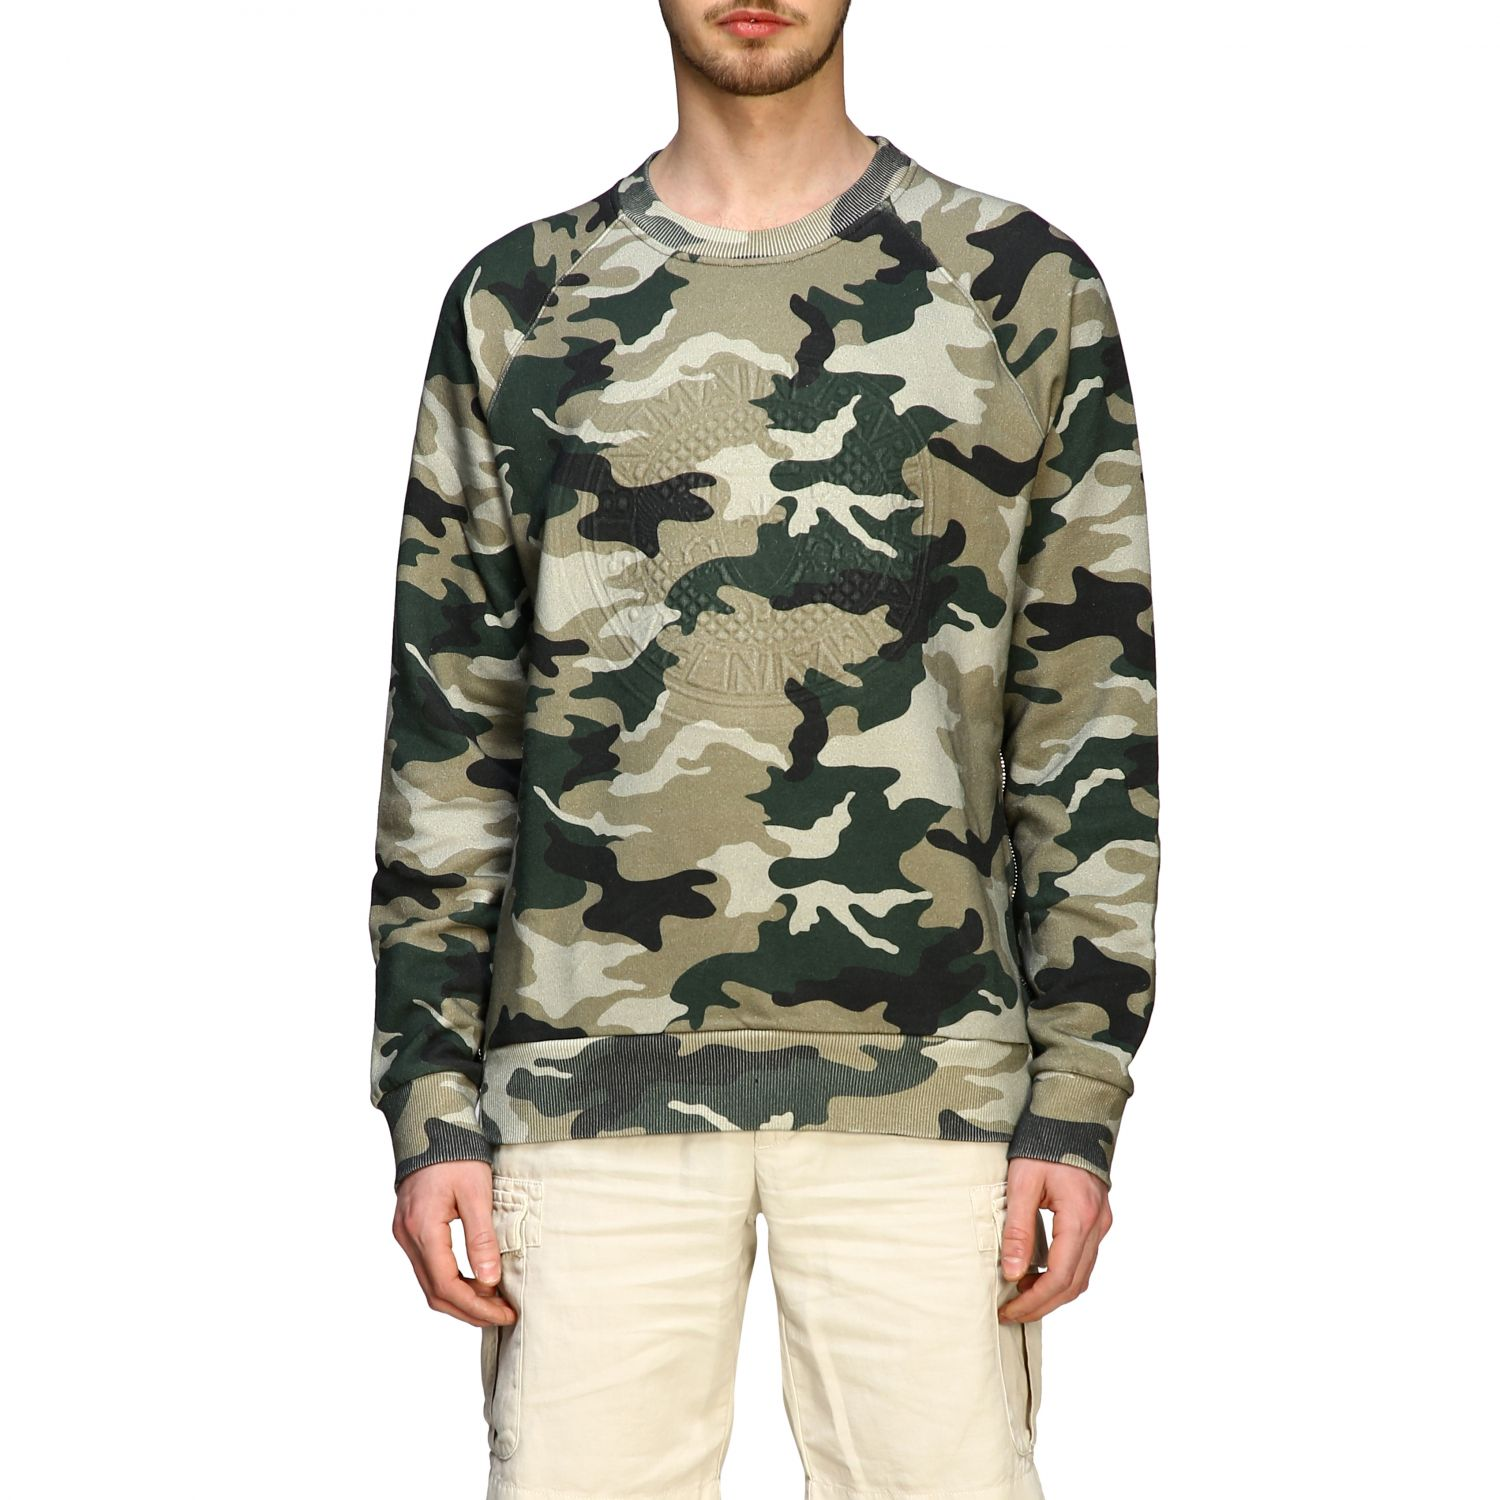 Sweatshirt Balmain: Balmain camouflage sweatshirt with flocked logo and zip military 1